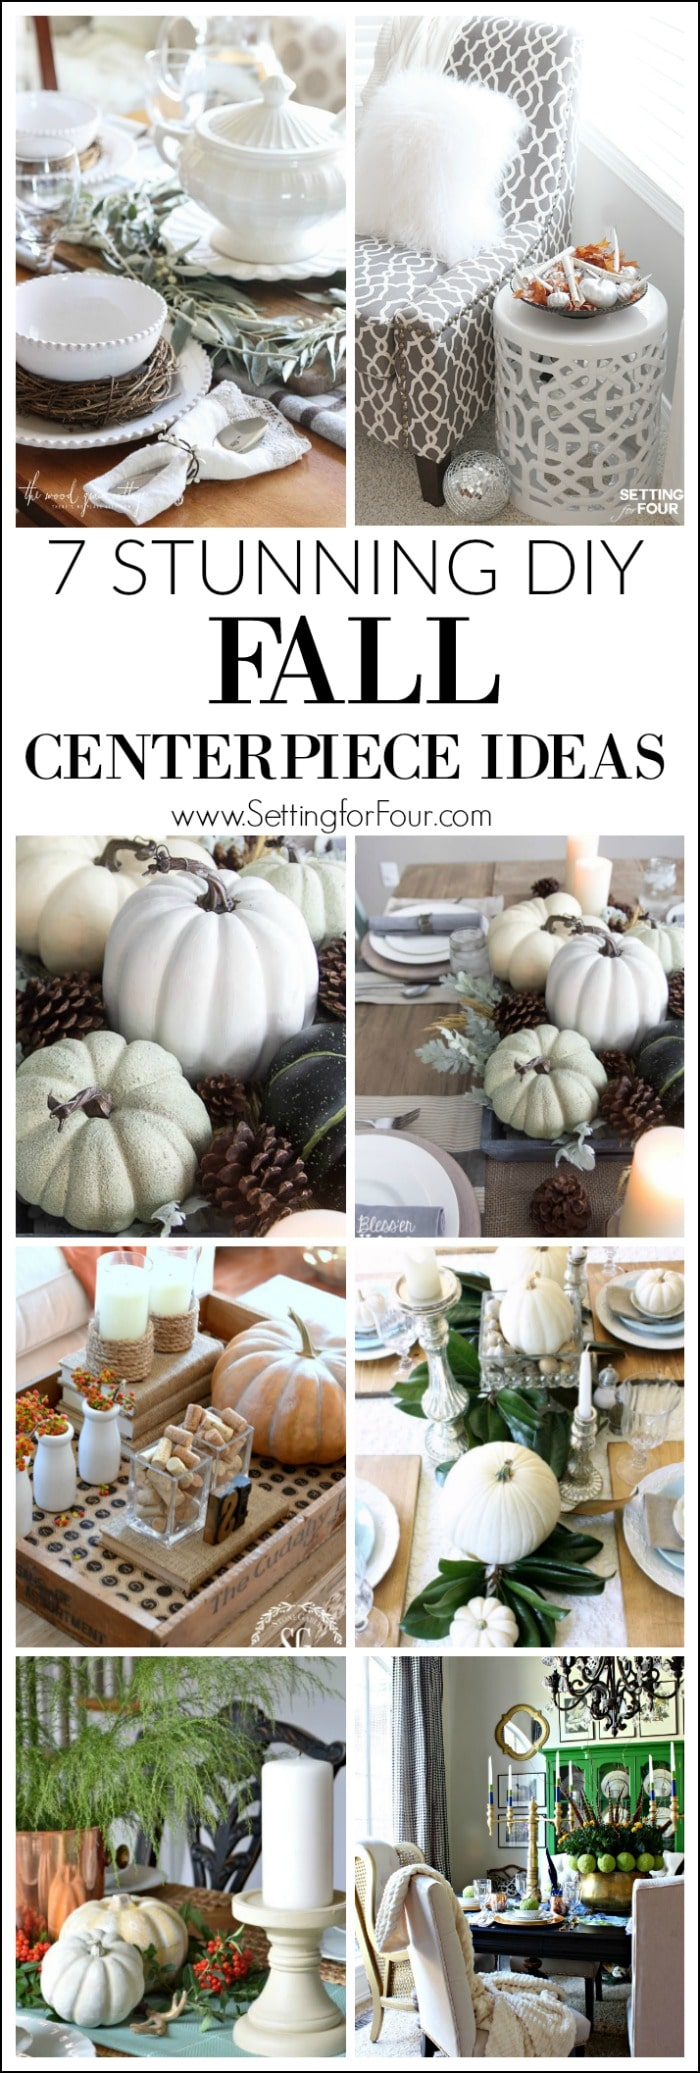 See 7 Stunning Fall Centerpiece Ideas to decorate your home for autumn!7 beautifuleasy to make centerpiece ideas using pumpkins, gourds, feathers and fall leaves for your dining table, end tableandcoffee table!